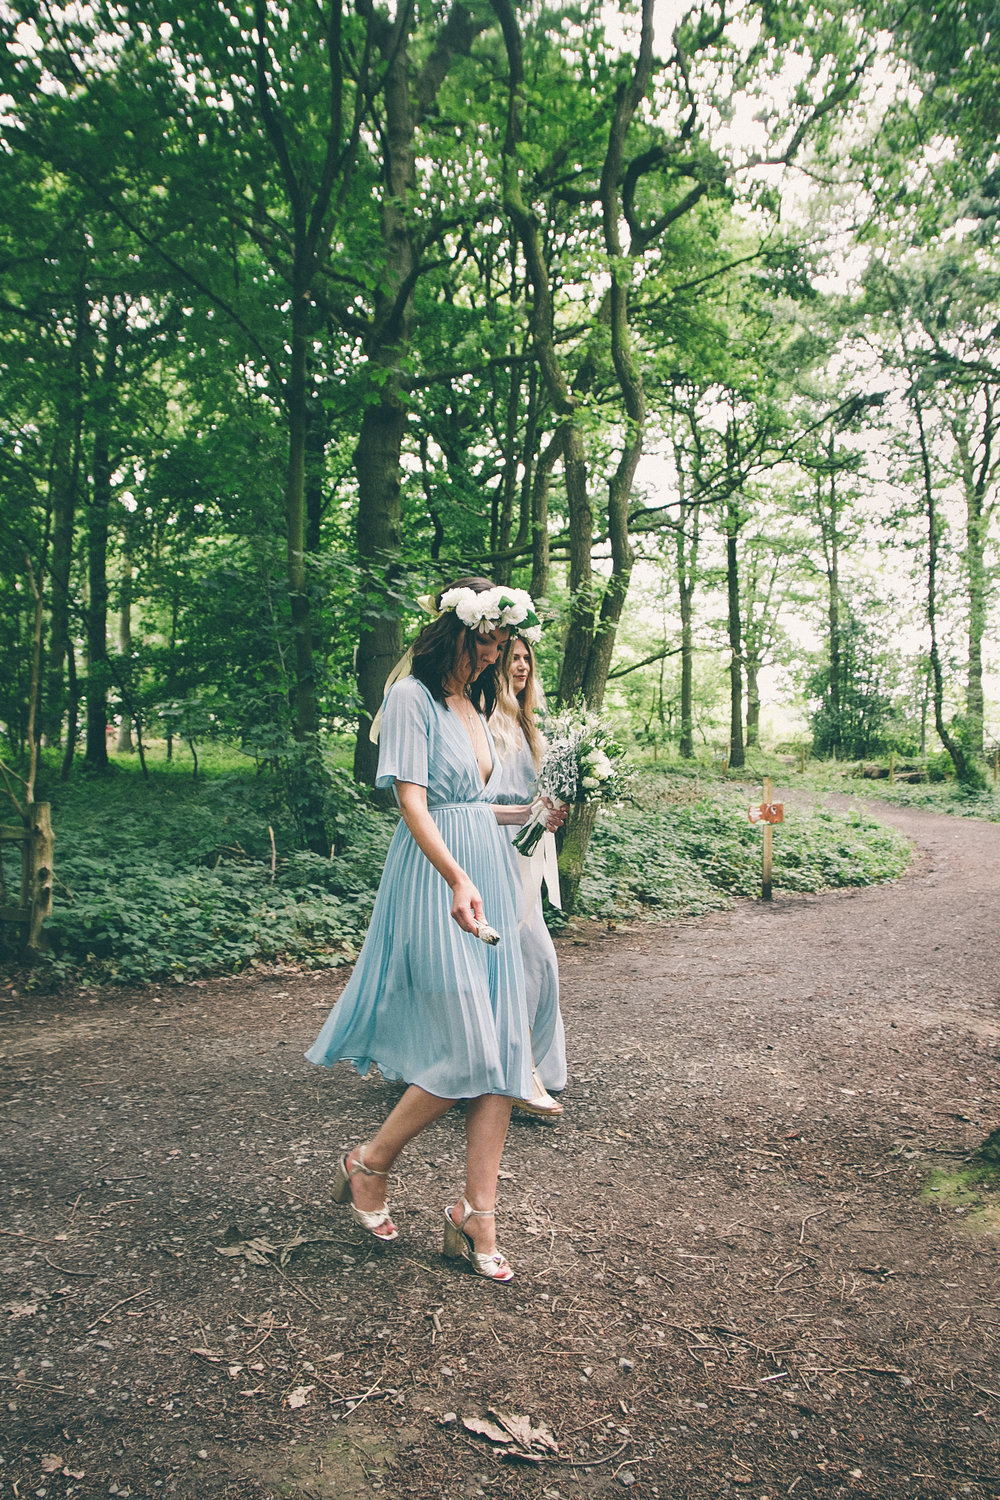 Magical Forest Wedding - Carolyn Carter photography